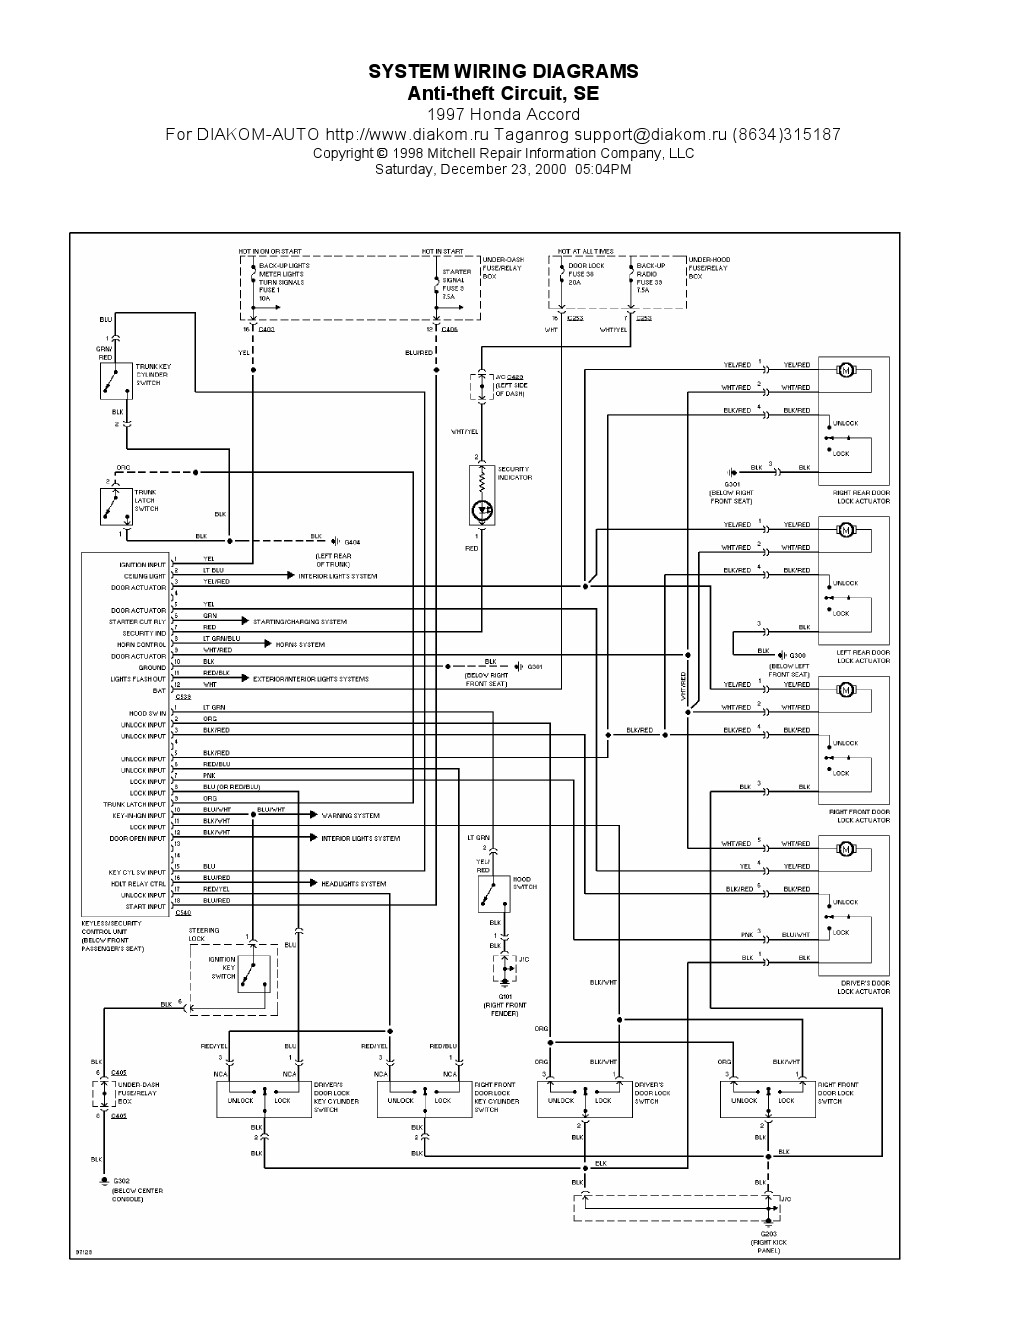 97 Accord Wire Diagram - Wiring Diagram •wiring diagram